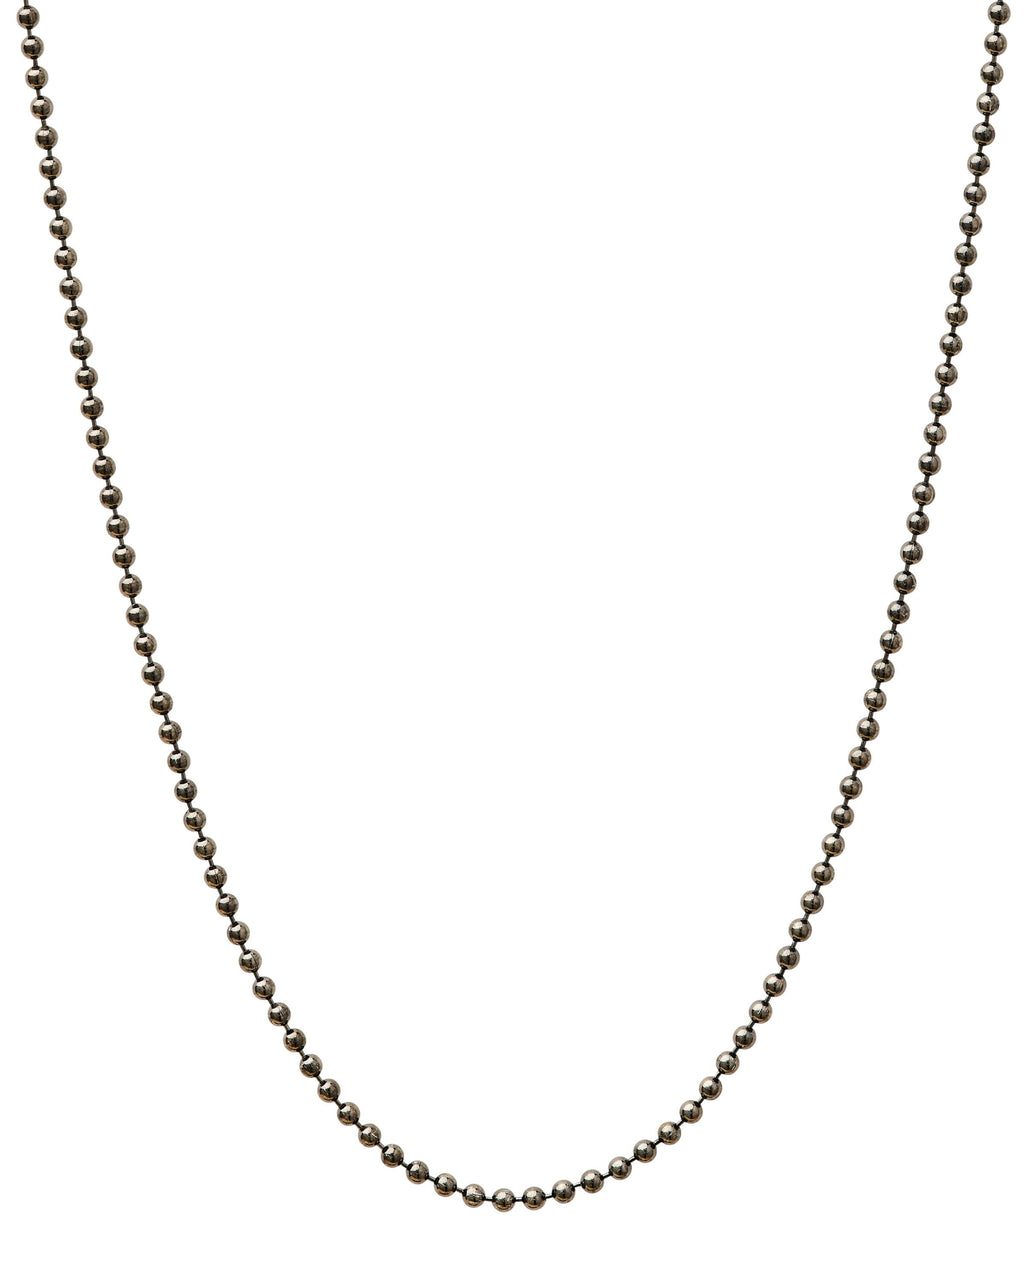 Gunmetal Bead Chain